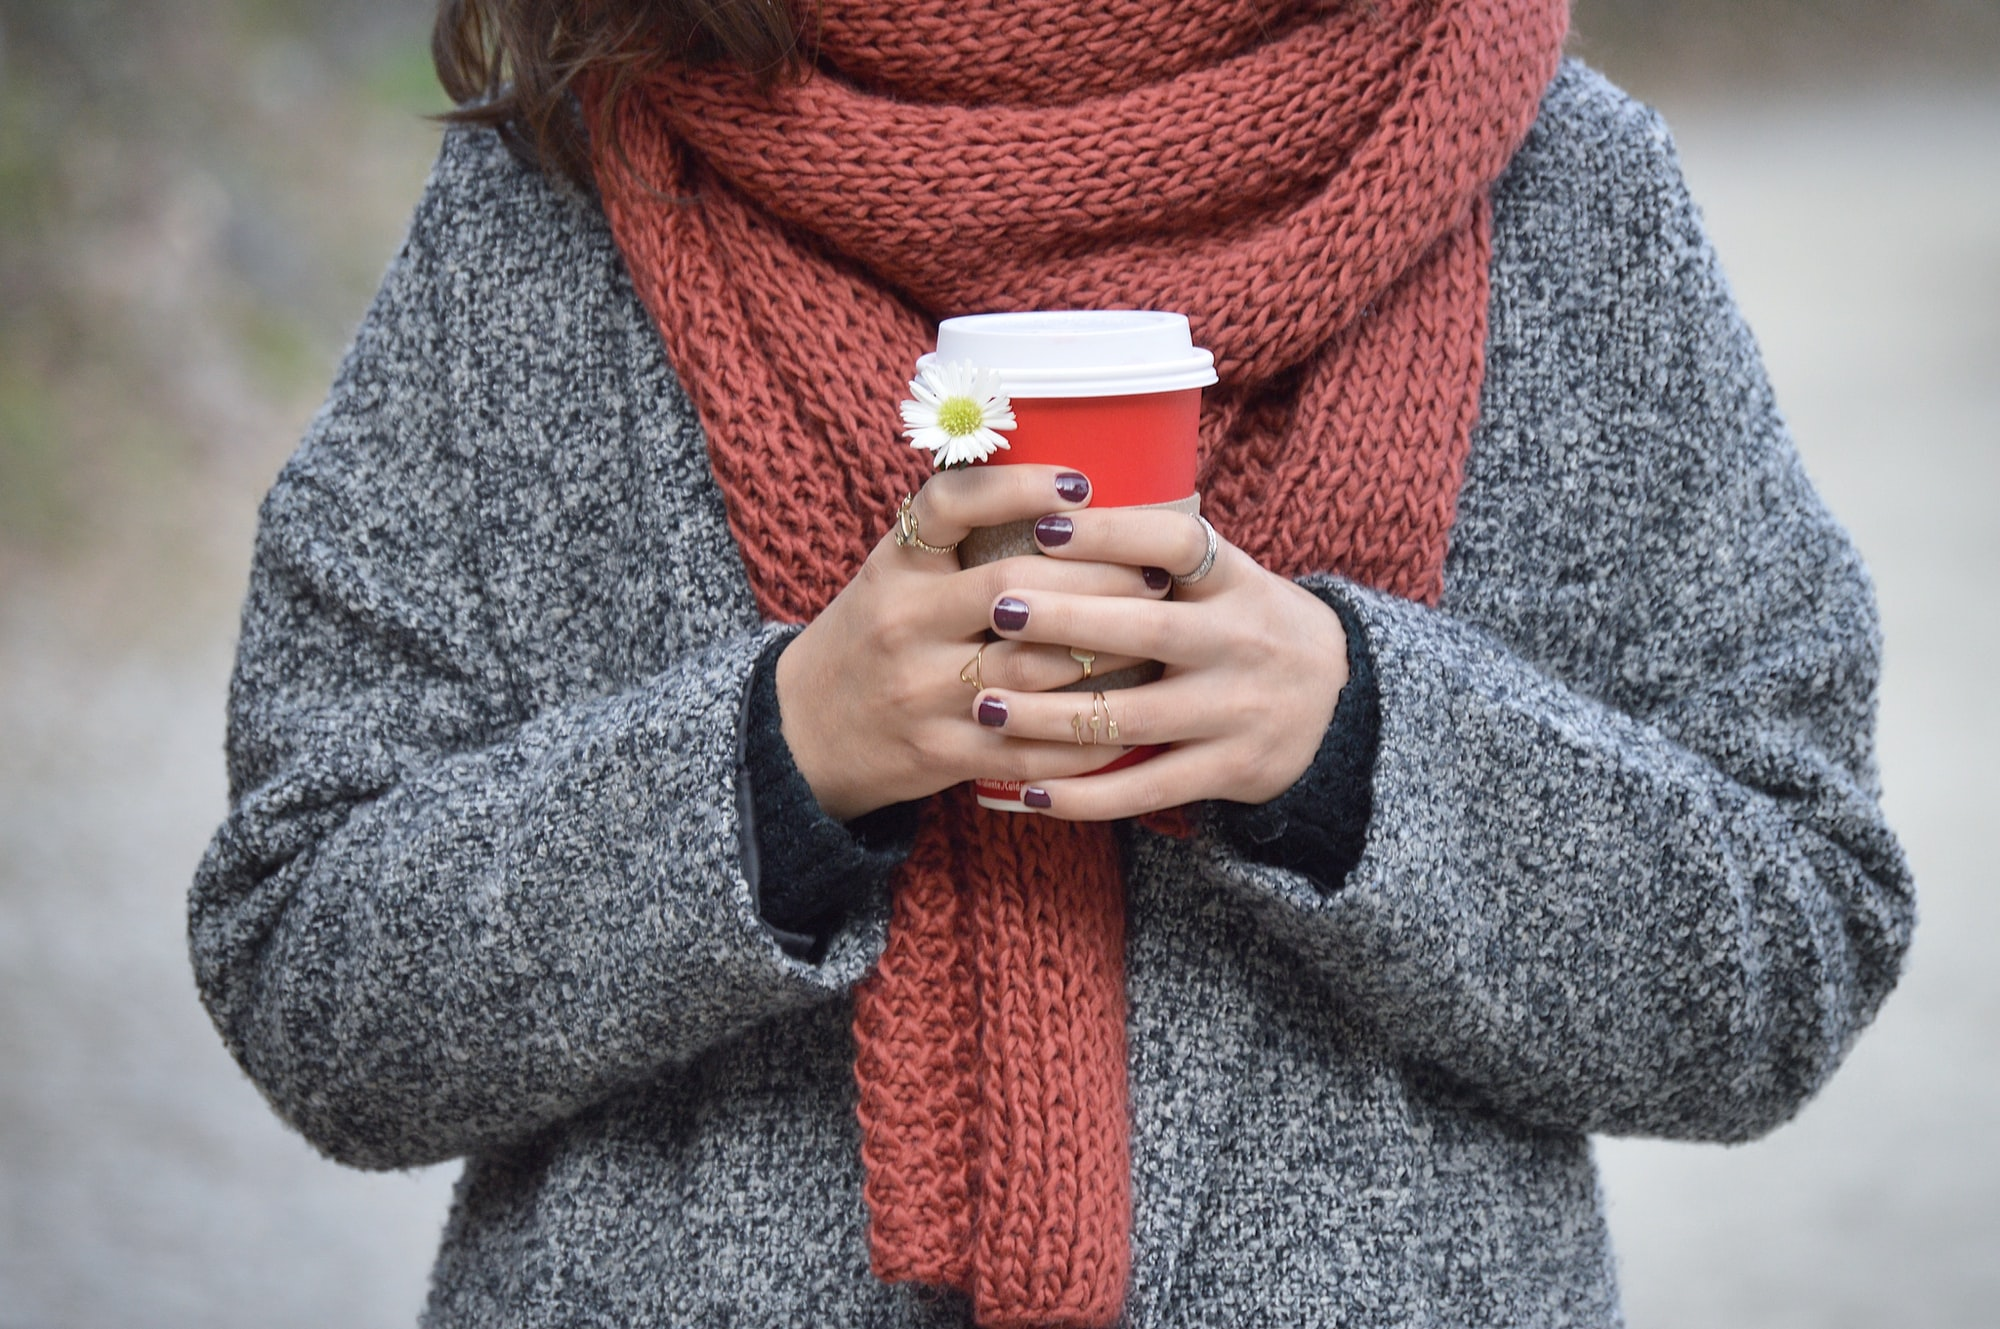 Person holding to-go coffee